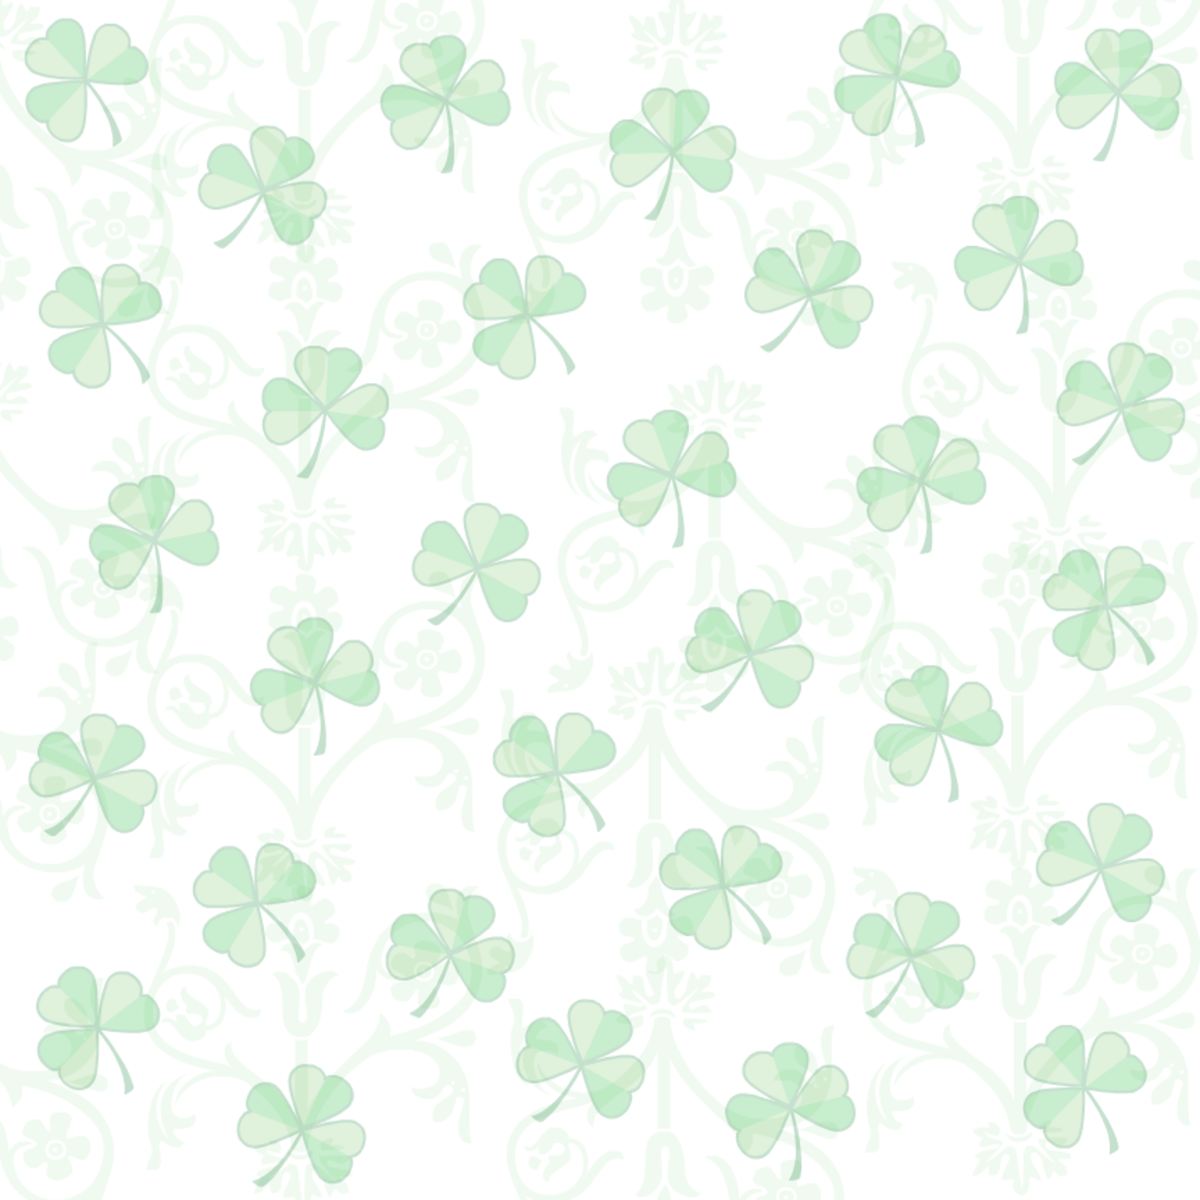 Shamrock white background scrapbook papers